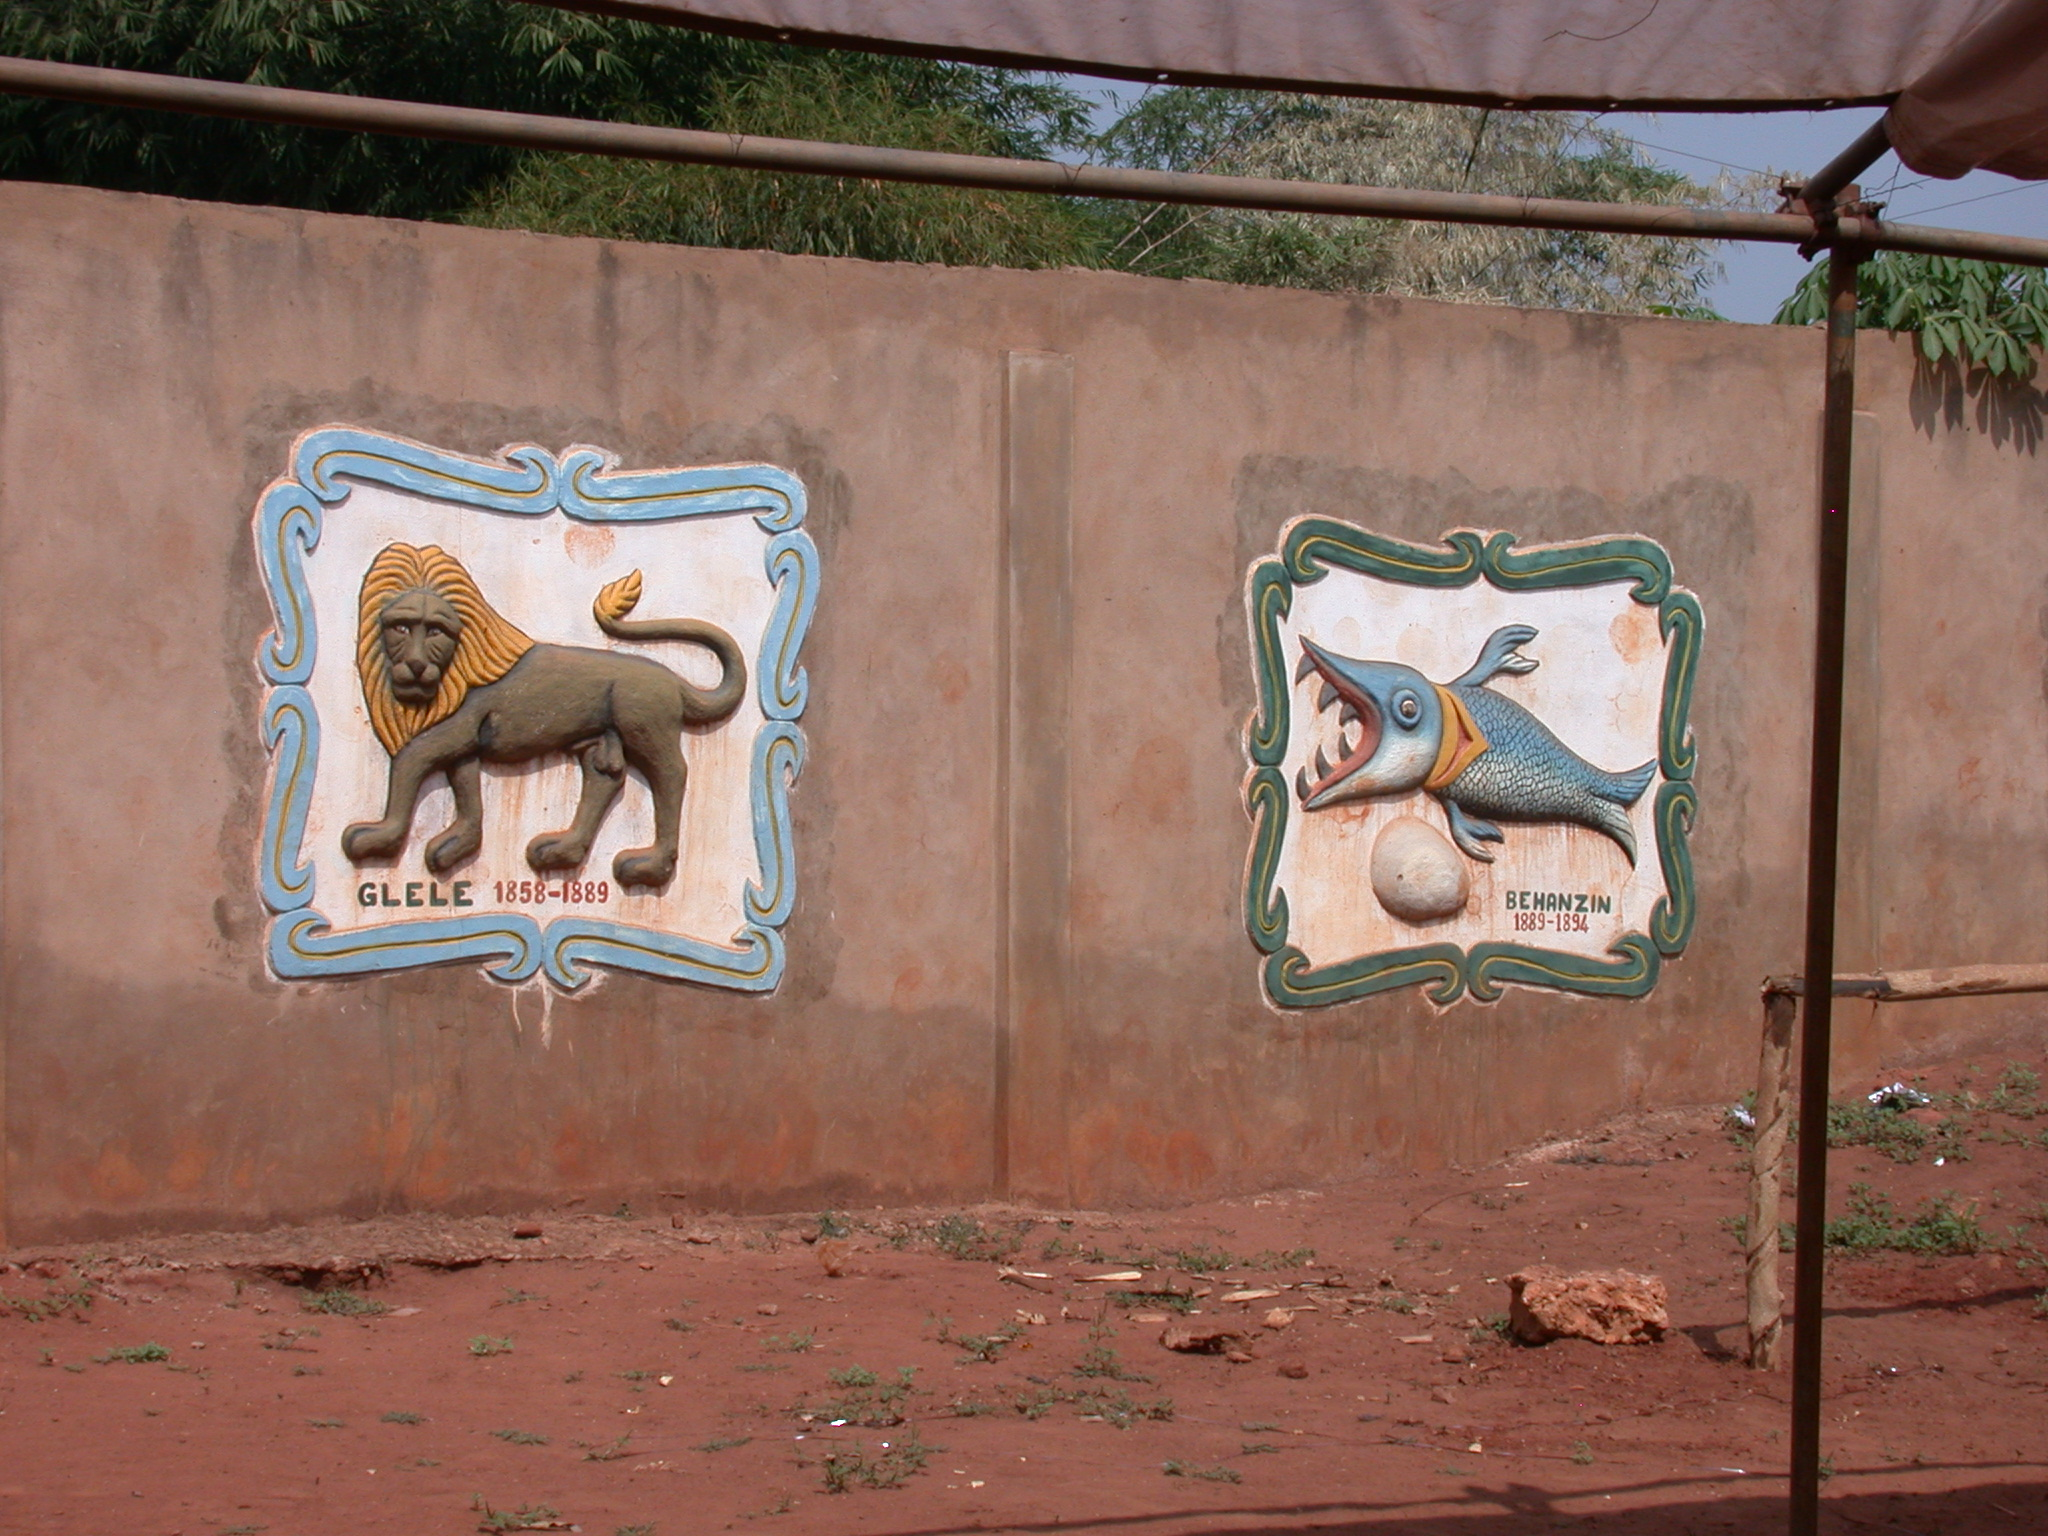 Glele Symbol and Behanzin Symbol on Compound Wall, Houemou Agonglo Temple, Abomey, Benin